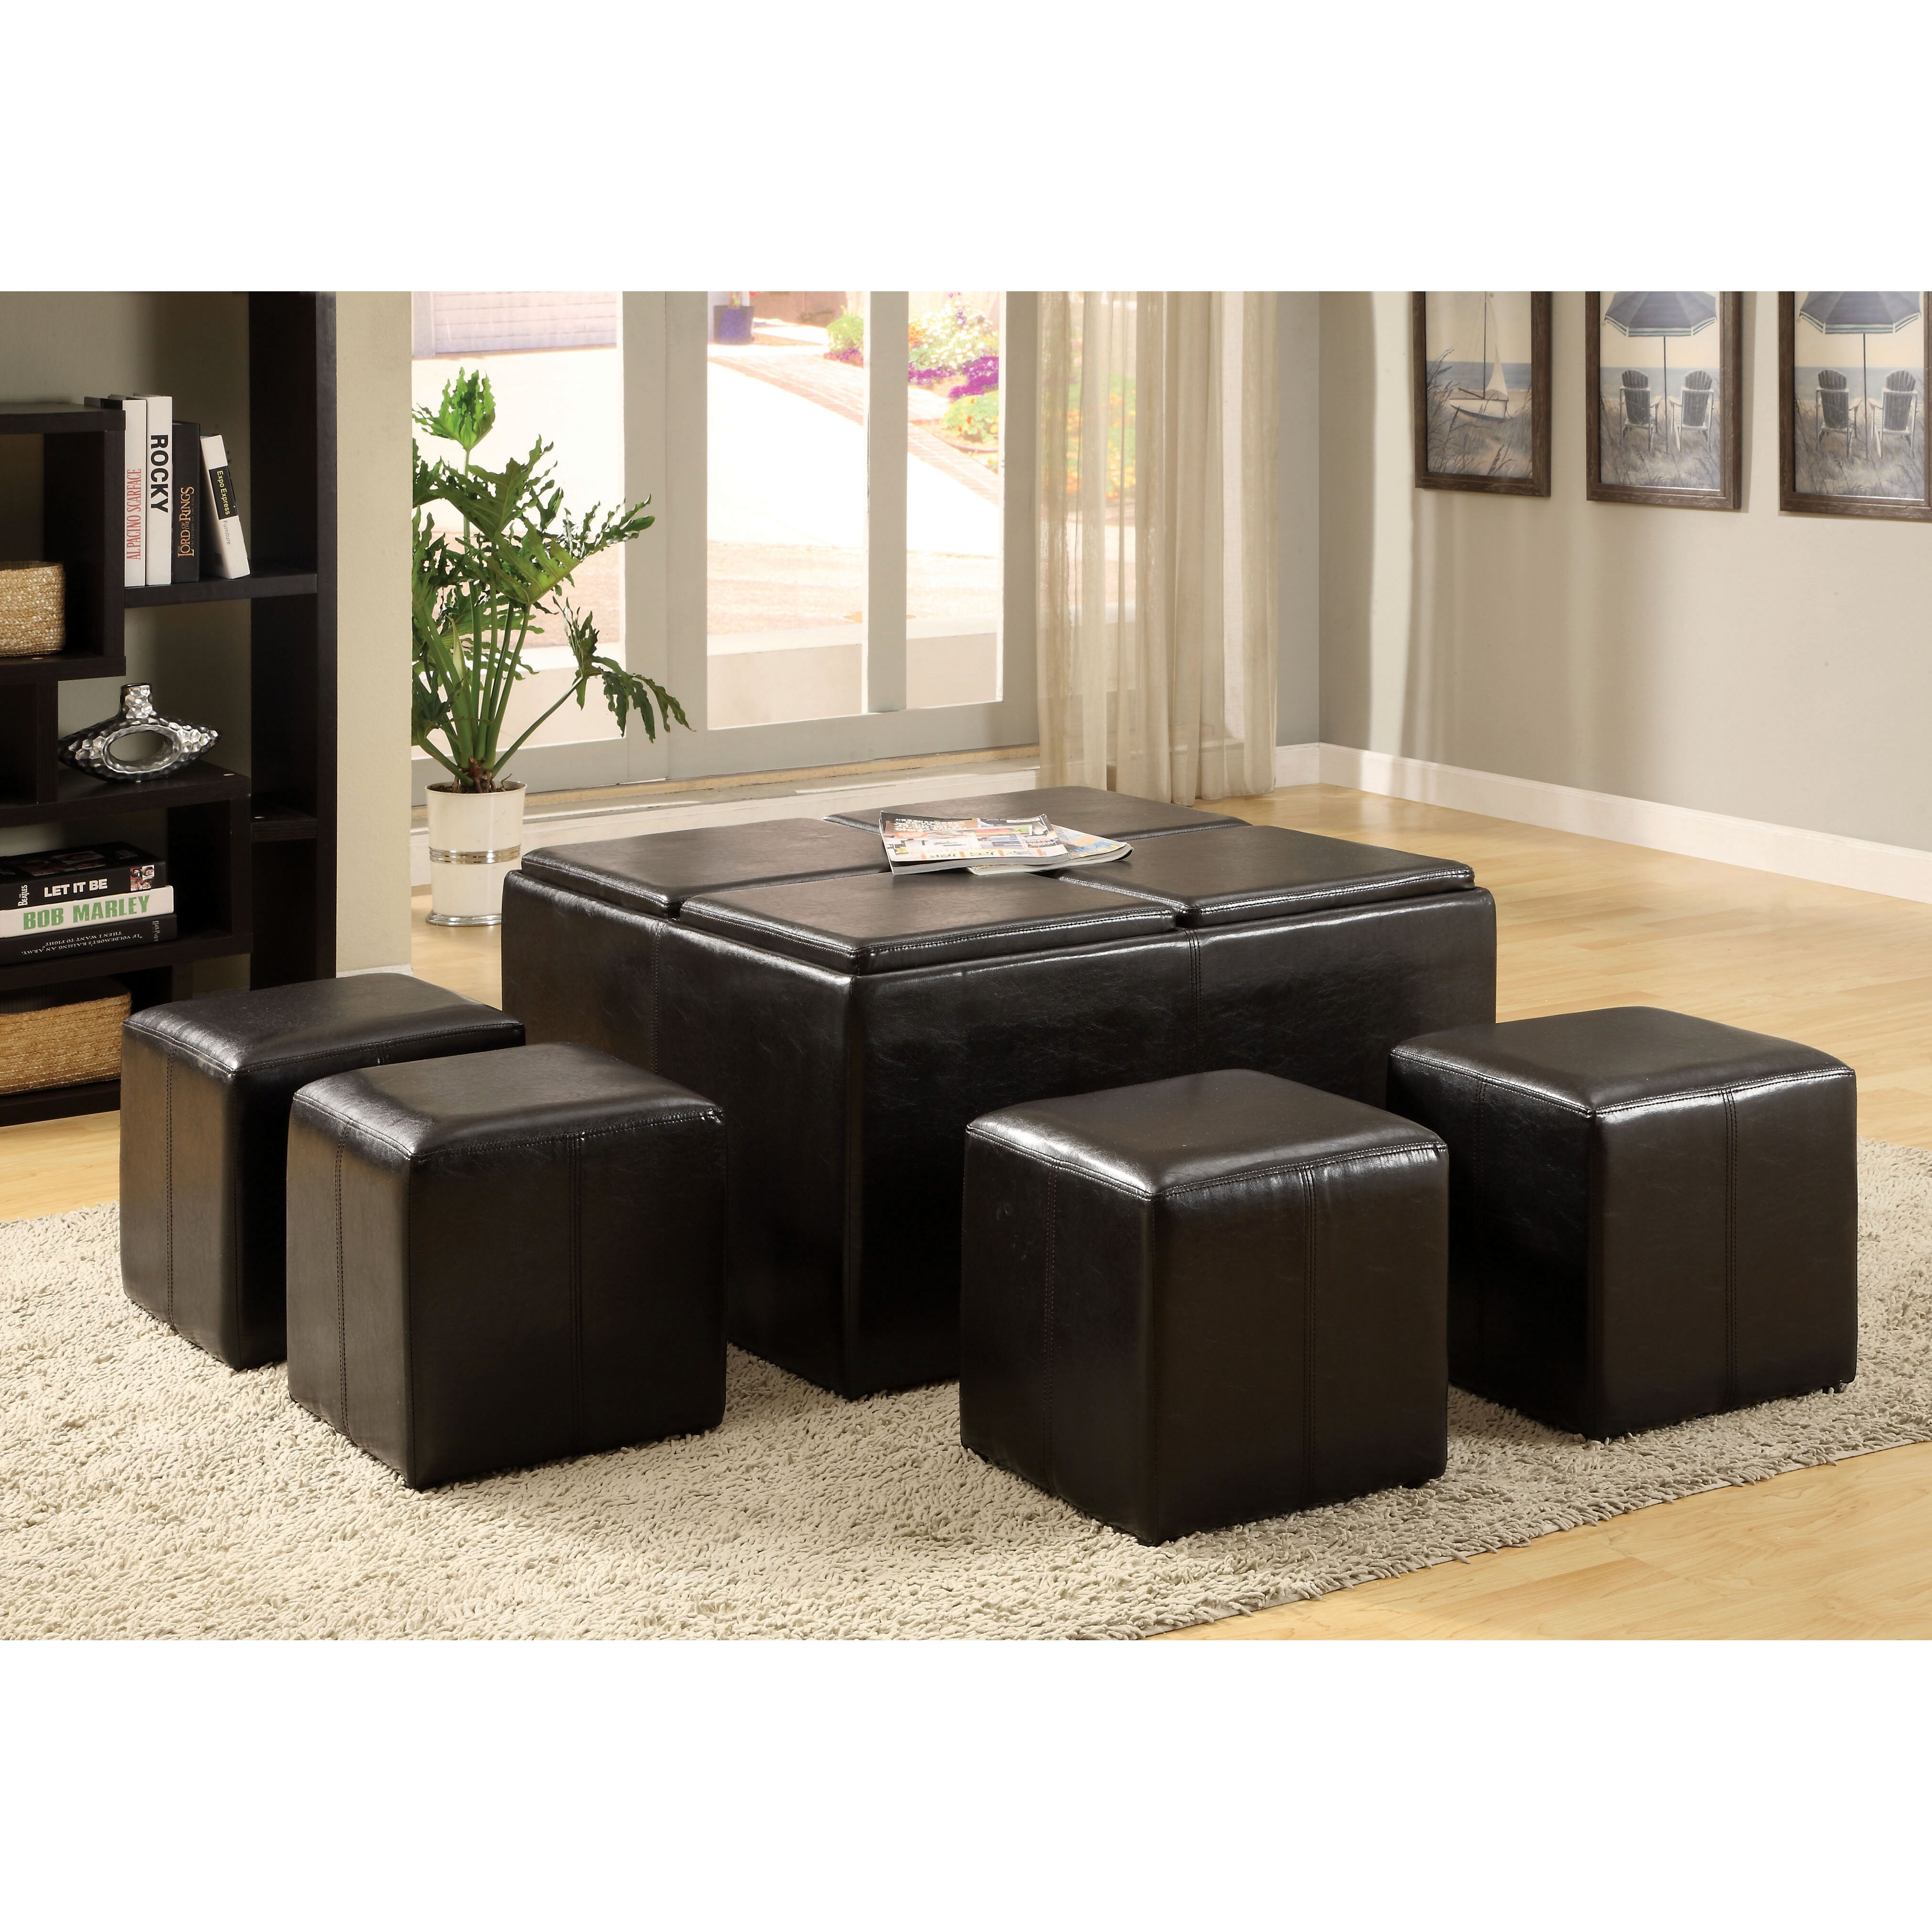 Hokku Coffee Table Sets: Hokku Designs 5 Piece Verano Coffee Table Ottoman Set